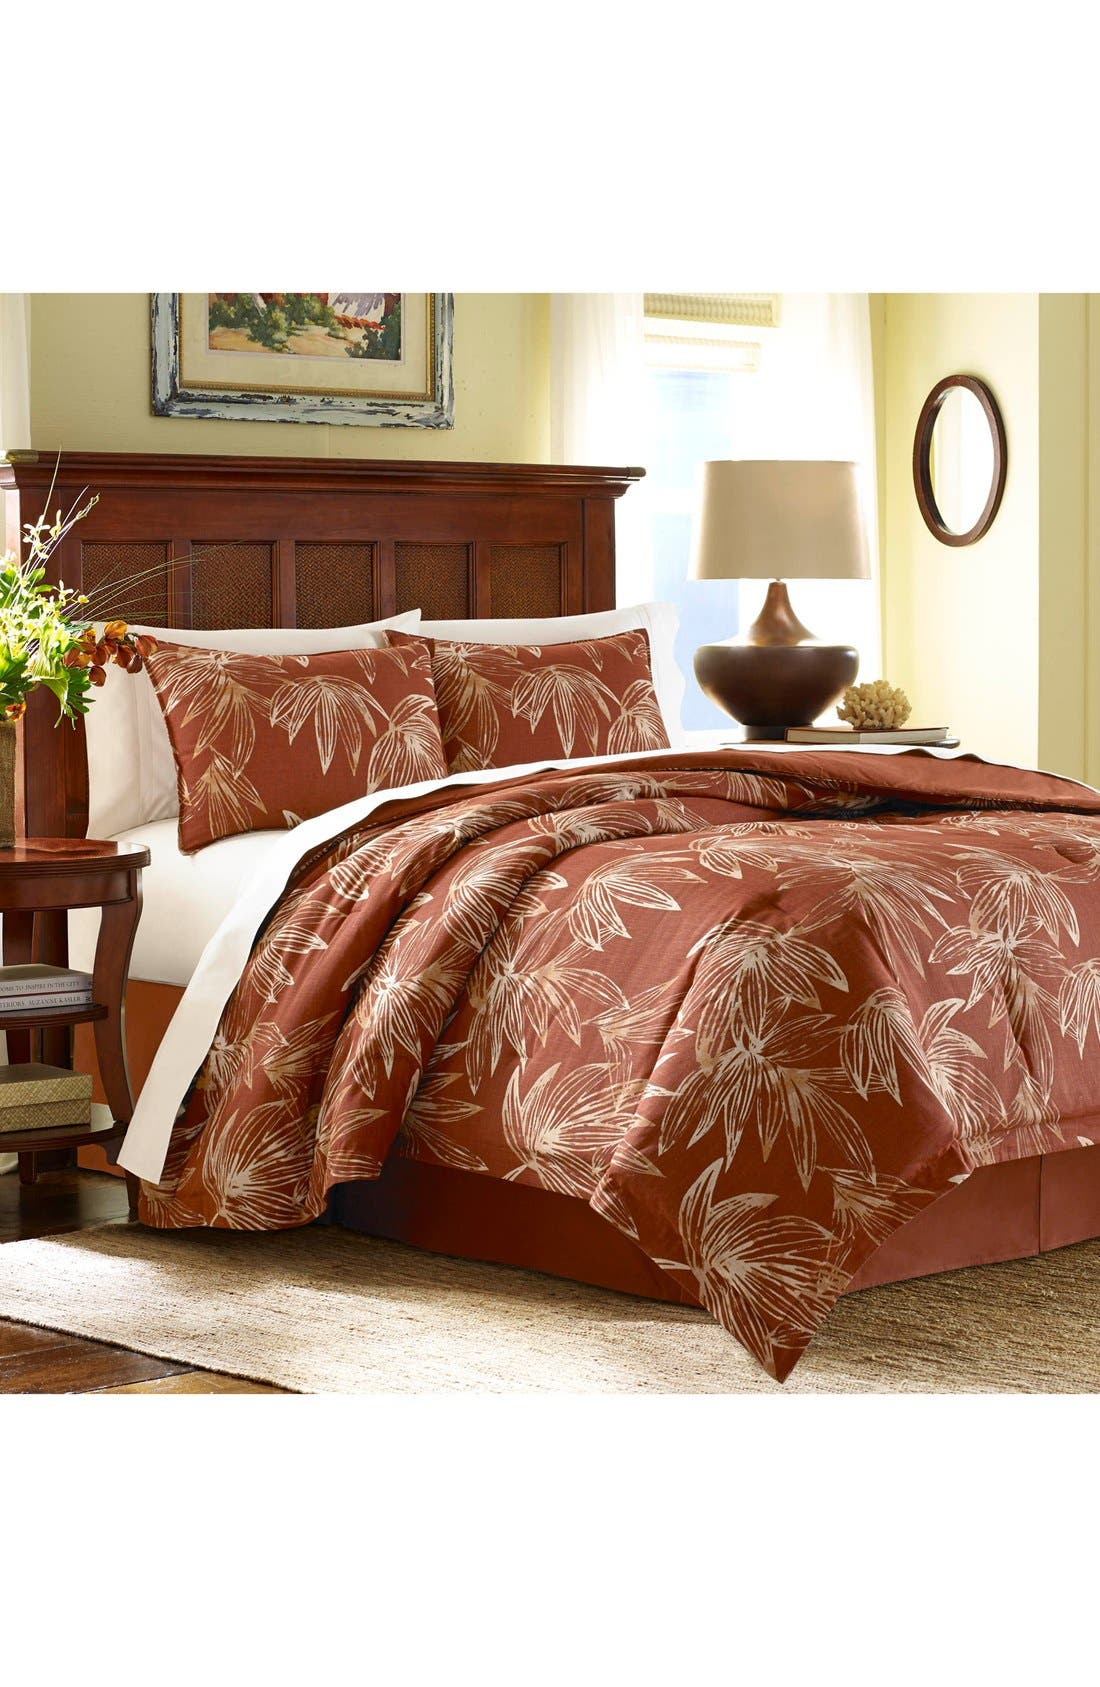 Alternate Image 1 Selected - Tommy Bahama Cayo Coco Duvet Cover & Sham Set